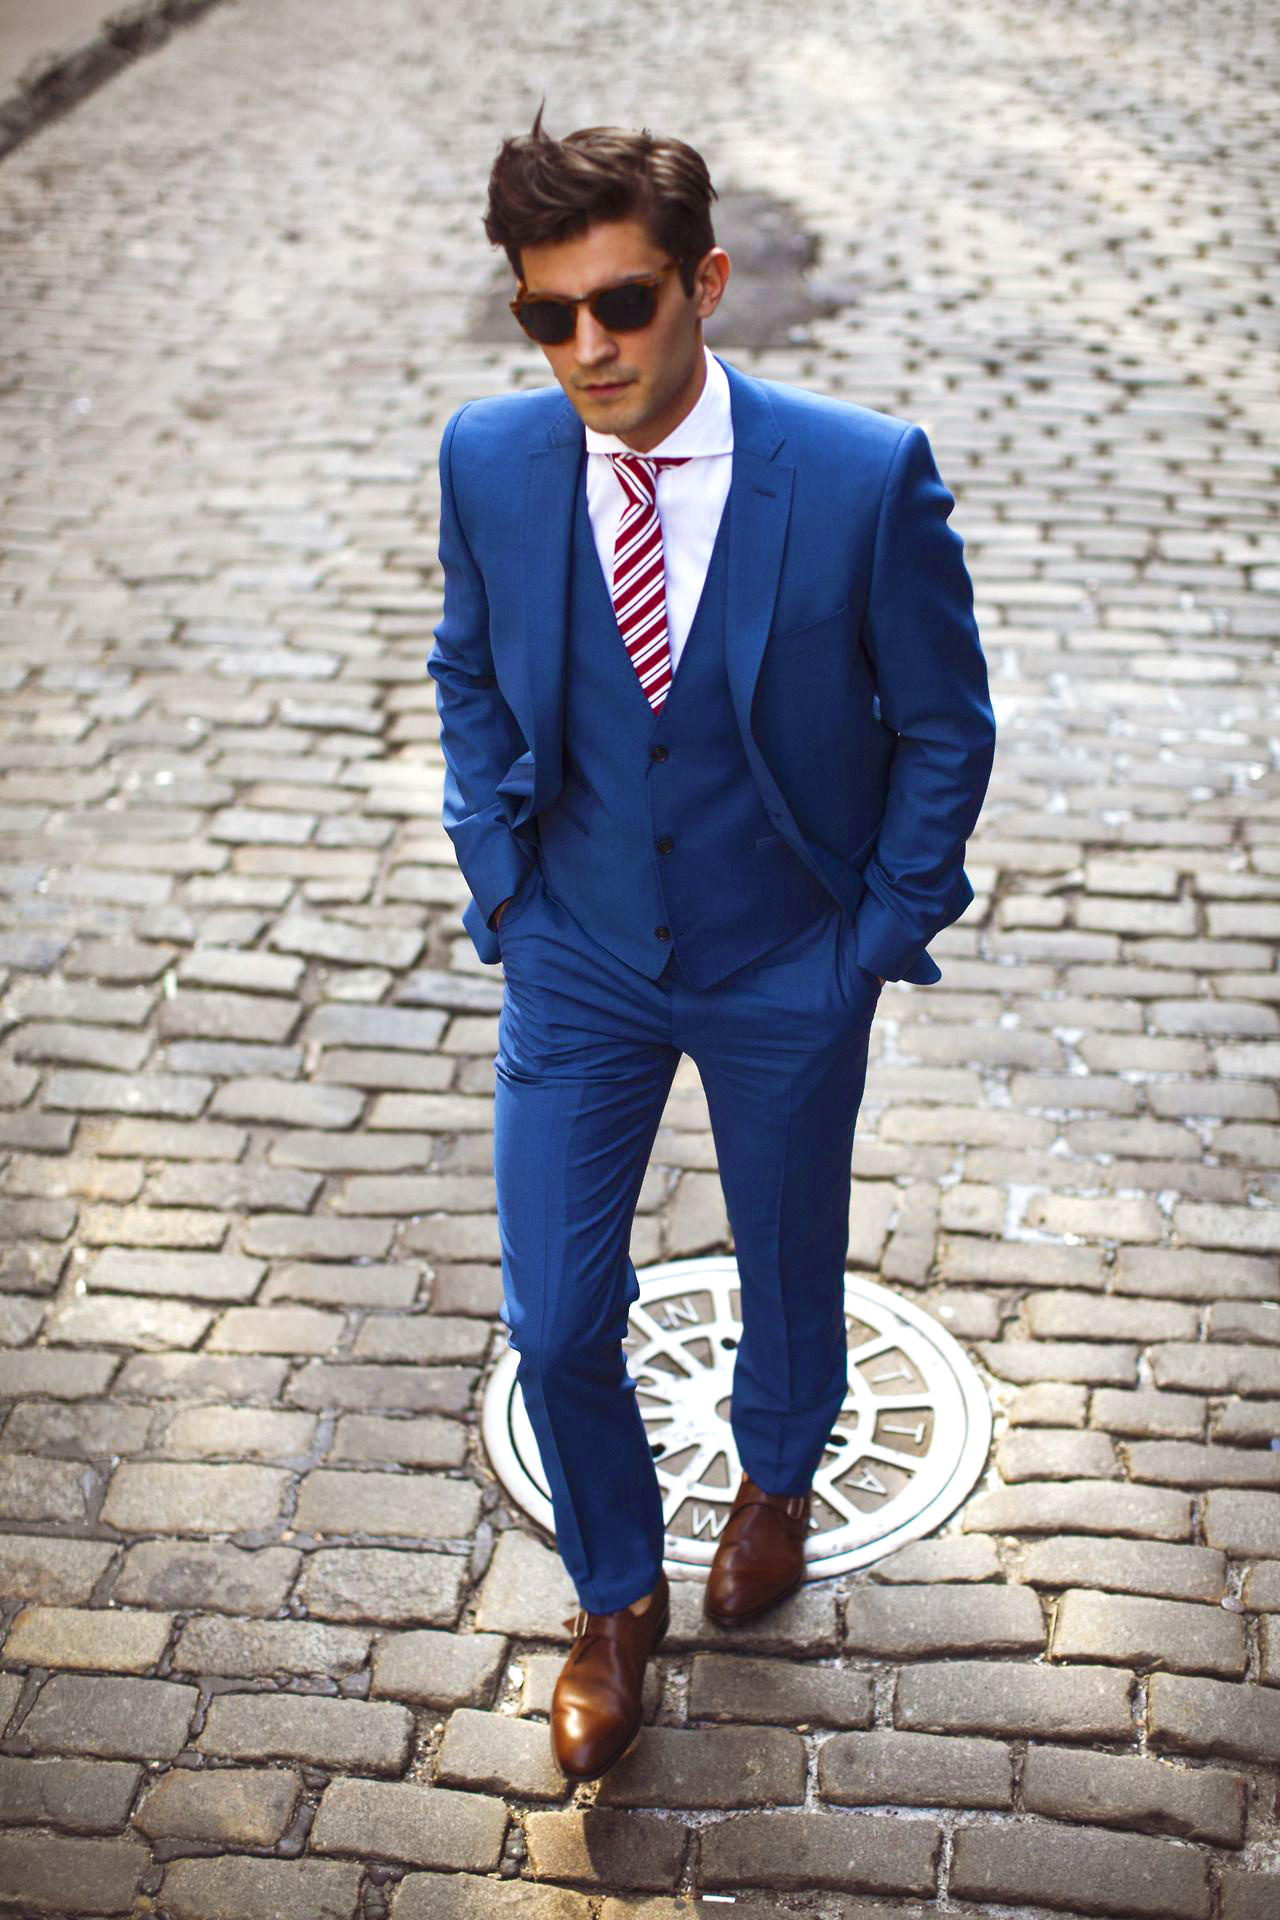 Perfect blue suit with a shirt and tie color combination